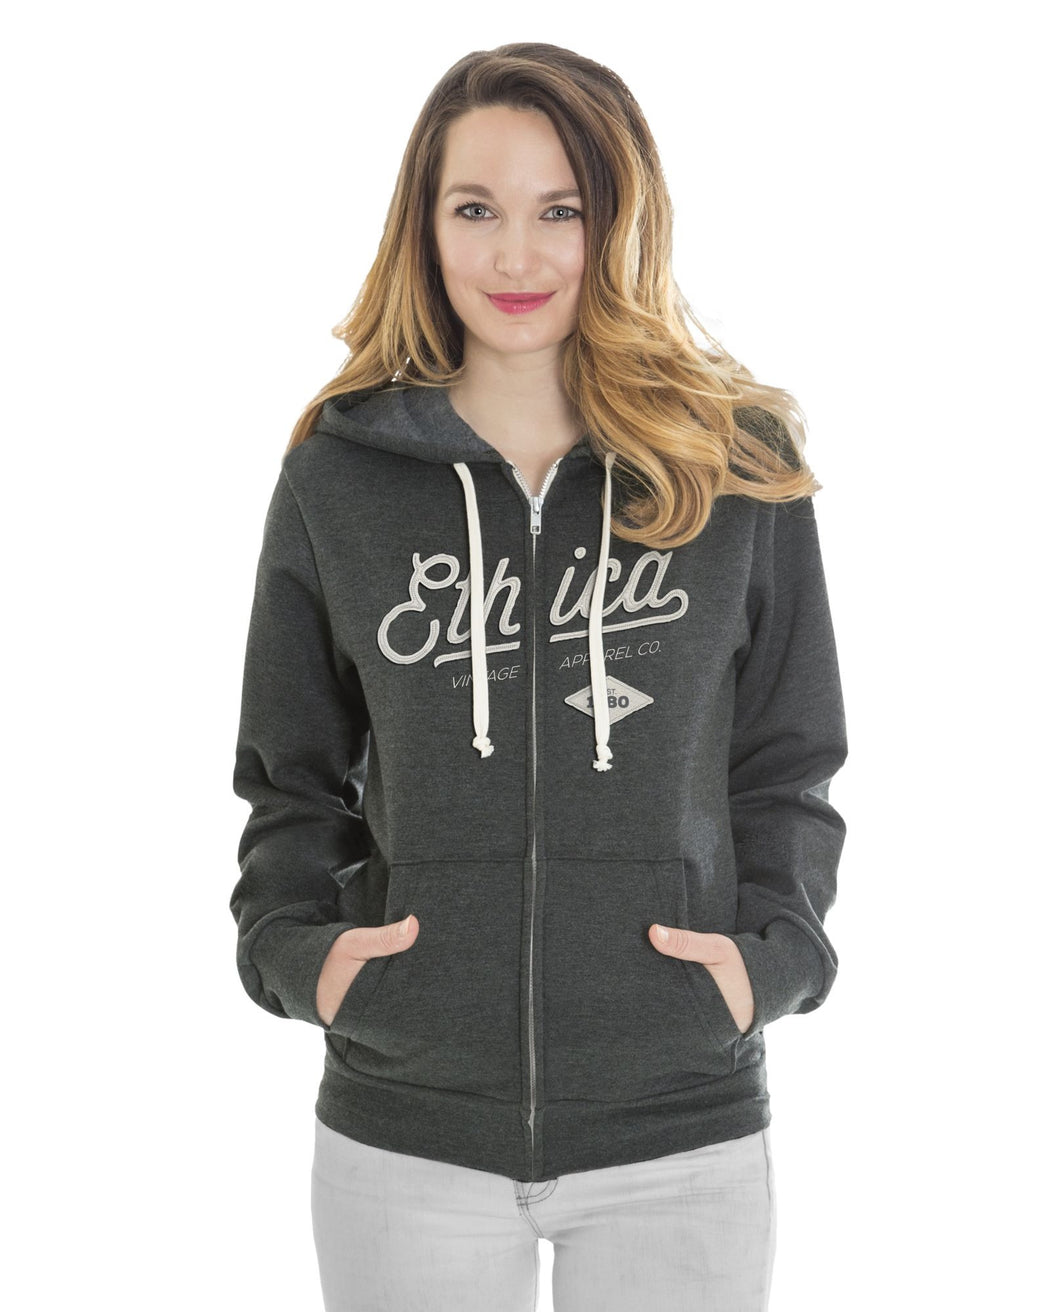 ethica Unisex Hooded Full Zip Sweater 517